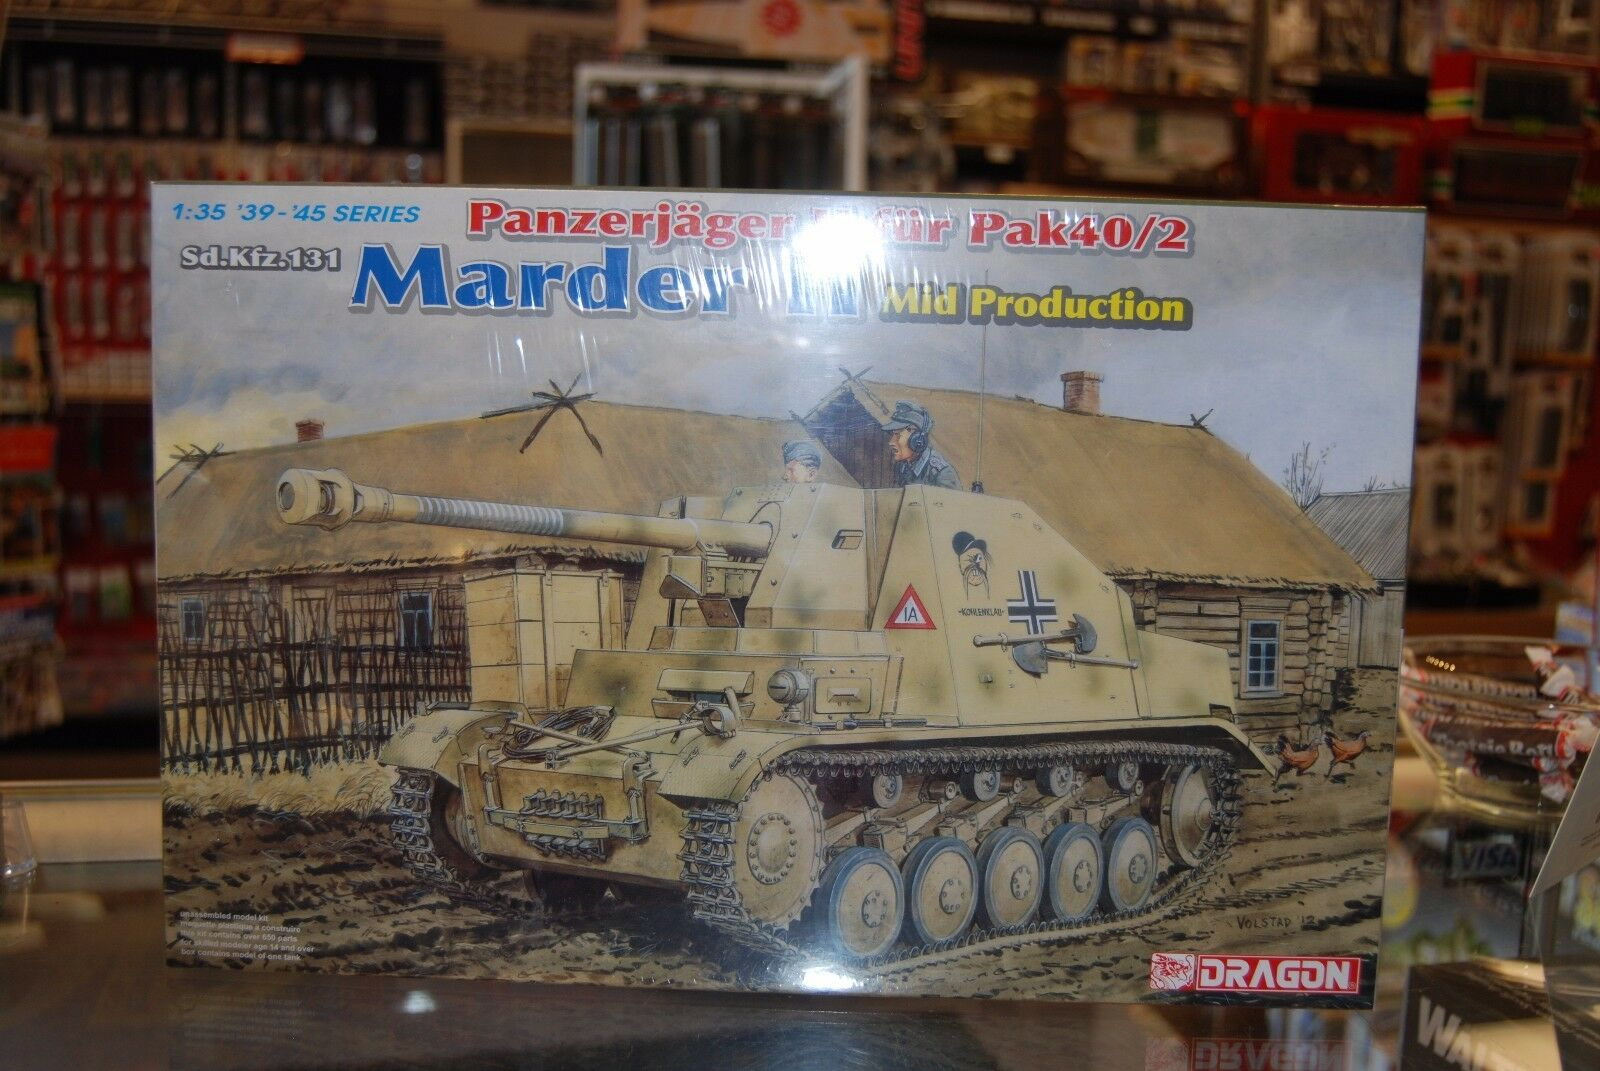 Dragon 6423  1 35 Sd.Kfz.131 Marder II Mid Production Model kit